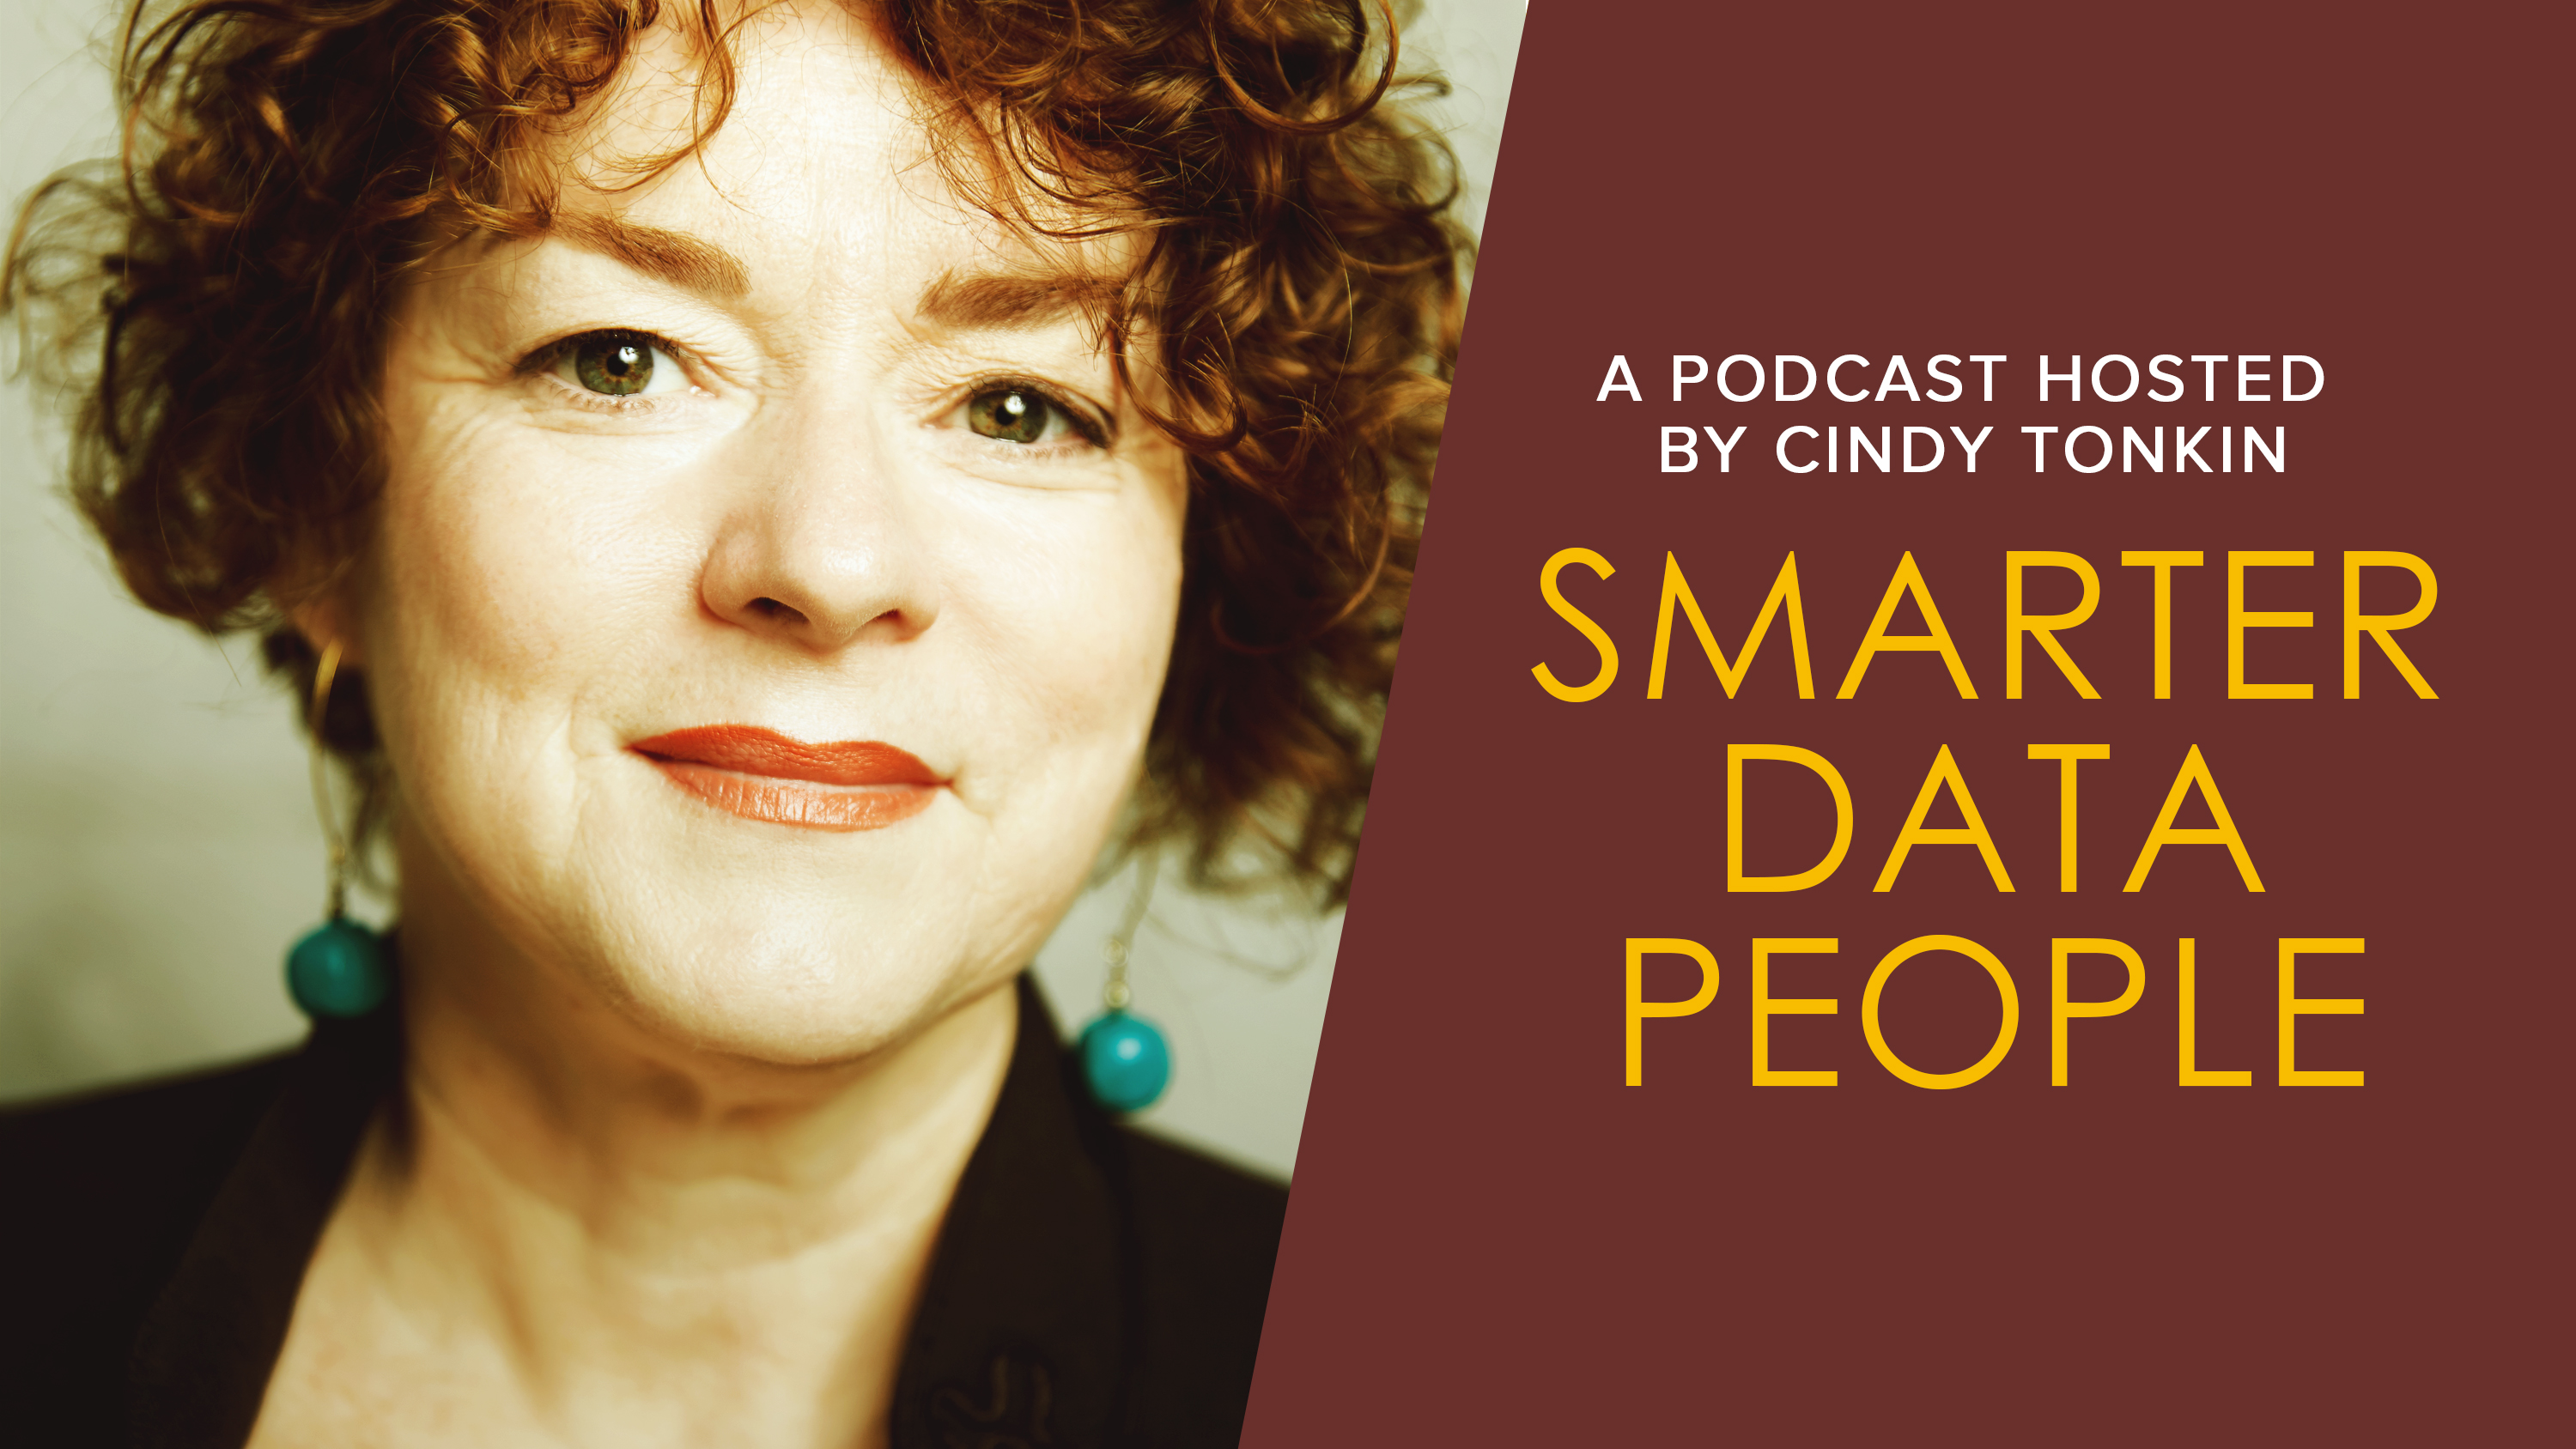 Keegan O'Shea on Smarter Data People Podcast